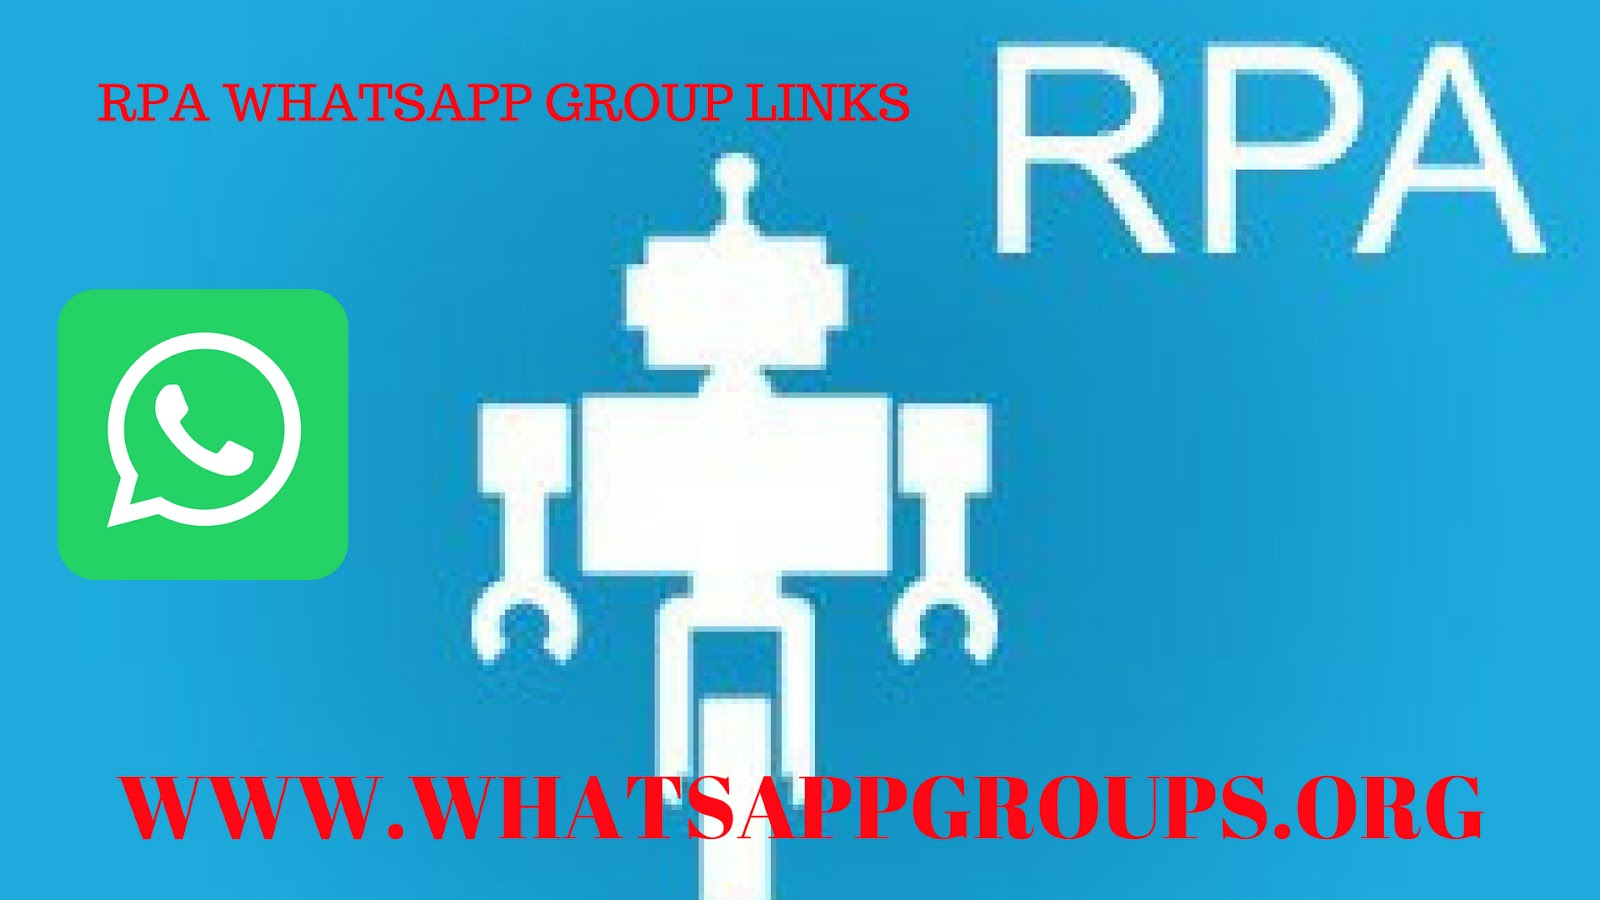 JOIN ROBOTICS PROCESS AUTOMATION (RPA) WHATSAPP GROUP LINKS